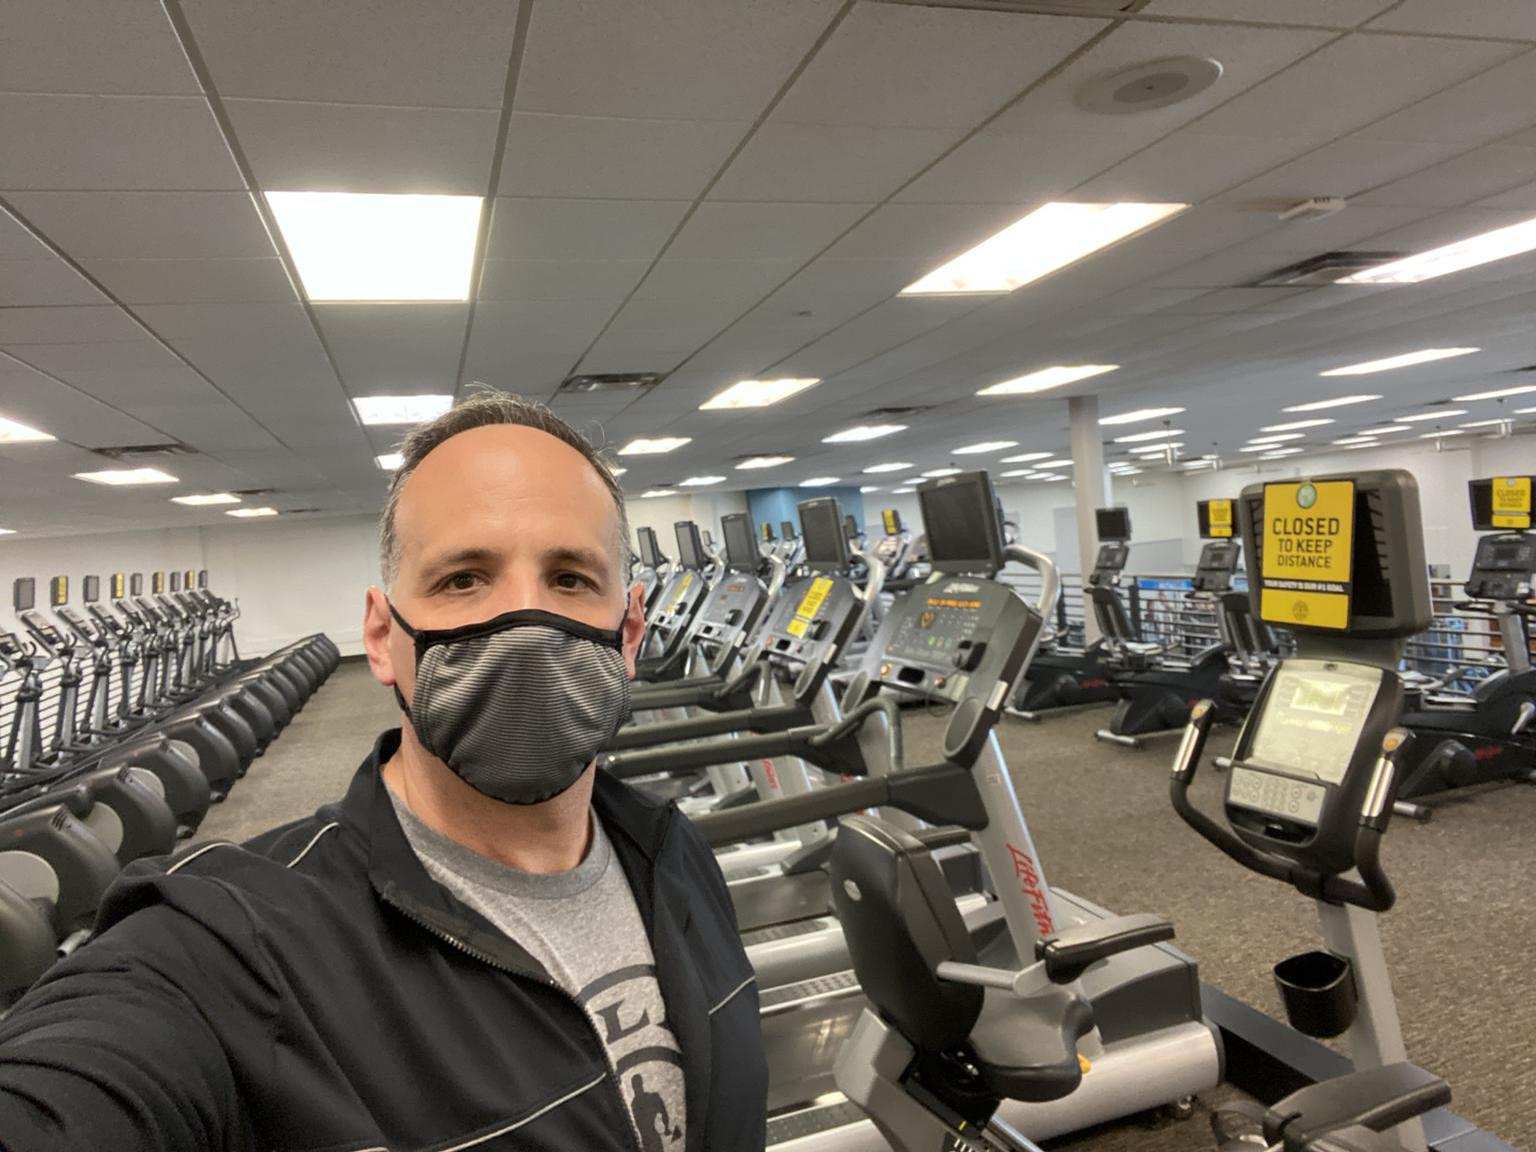 Gold's Gym is one of the chains to instigate a major reopening push (picture features Adam Zeitsiff, CEO, at one of the reopened clubs) / LinkedIn/Adam Zeitsiff